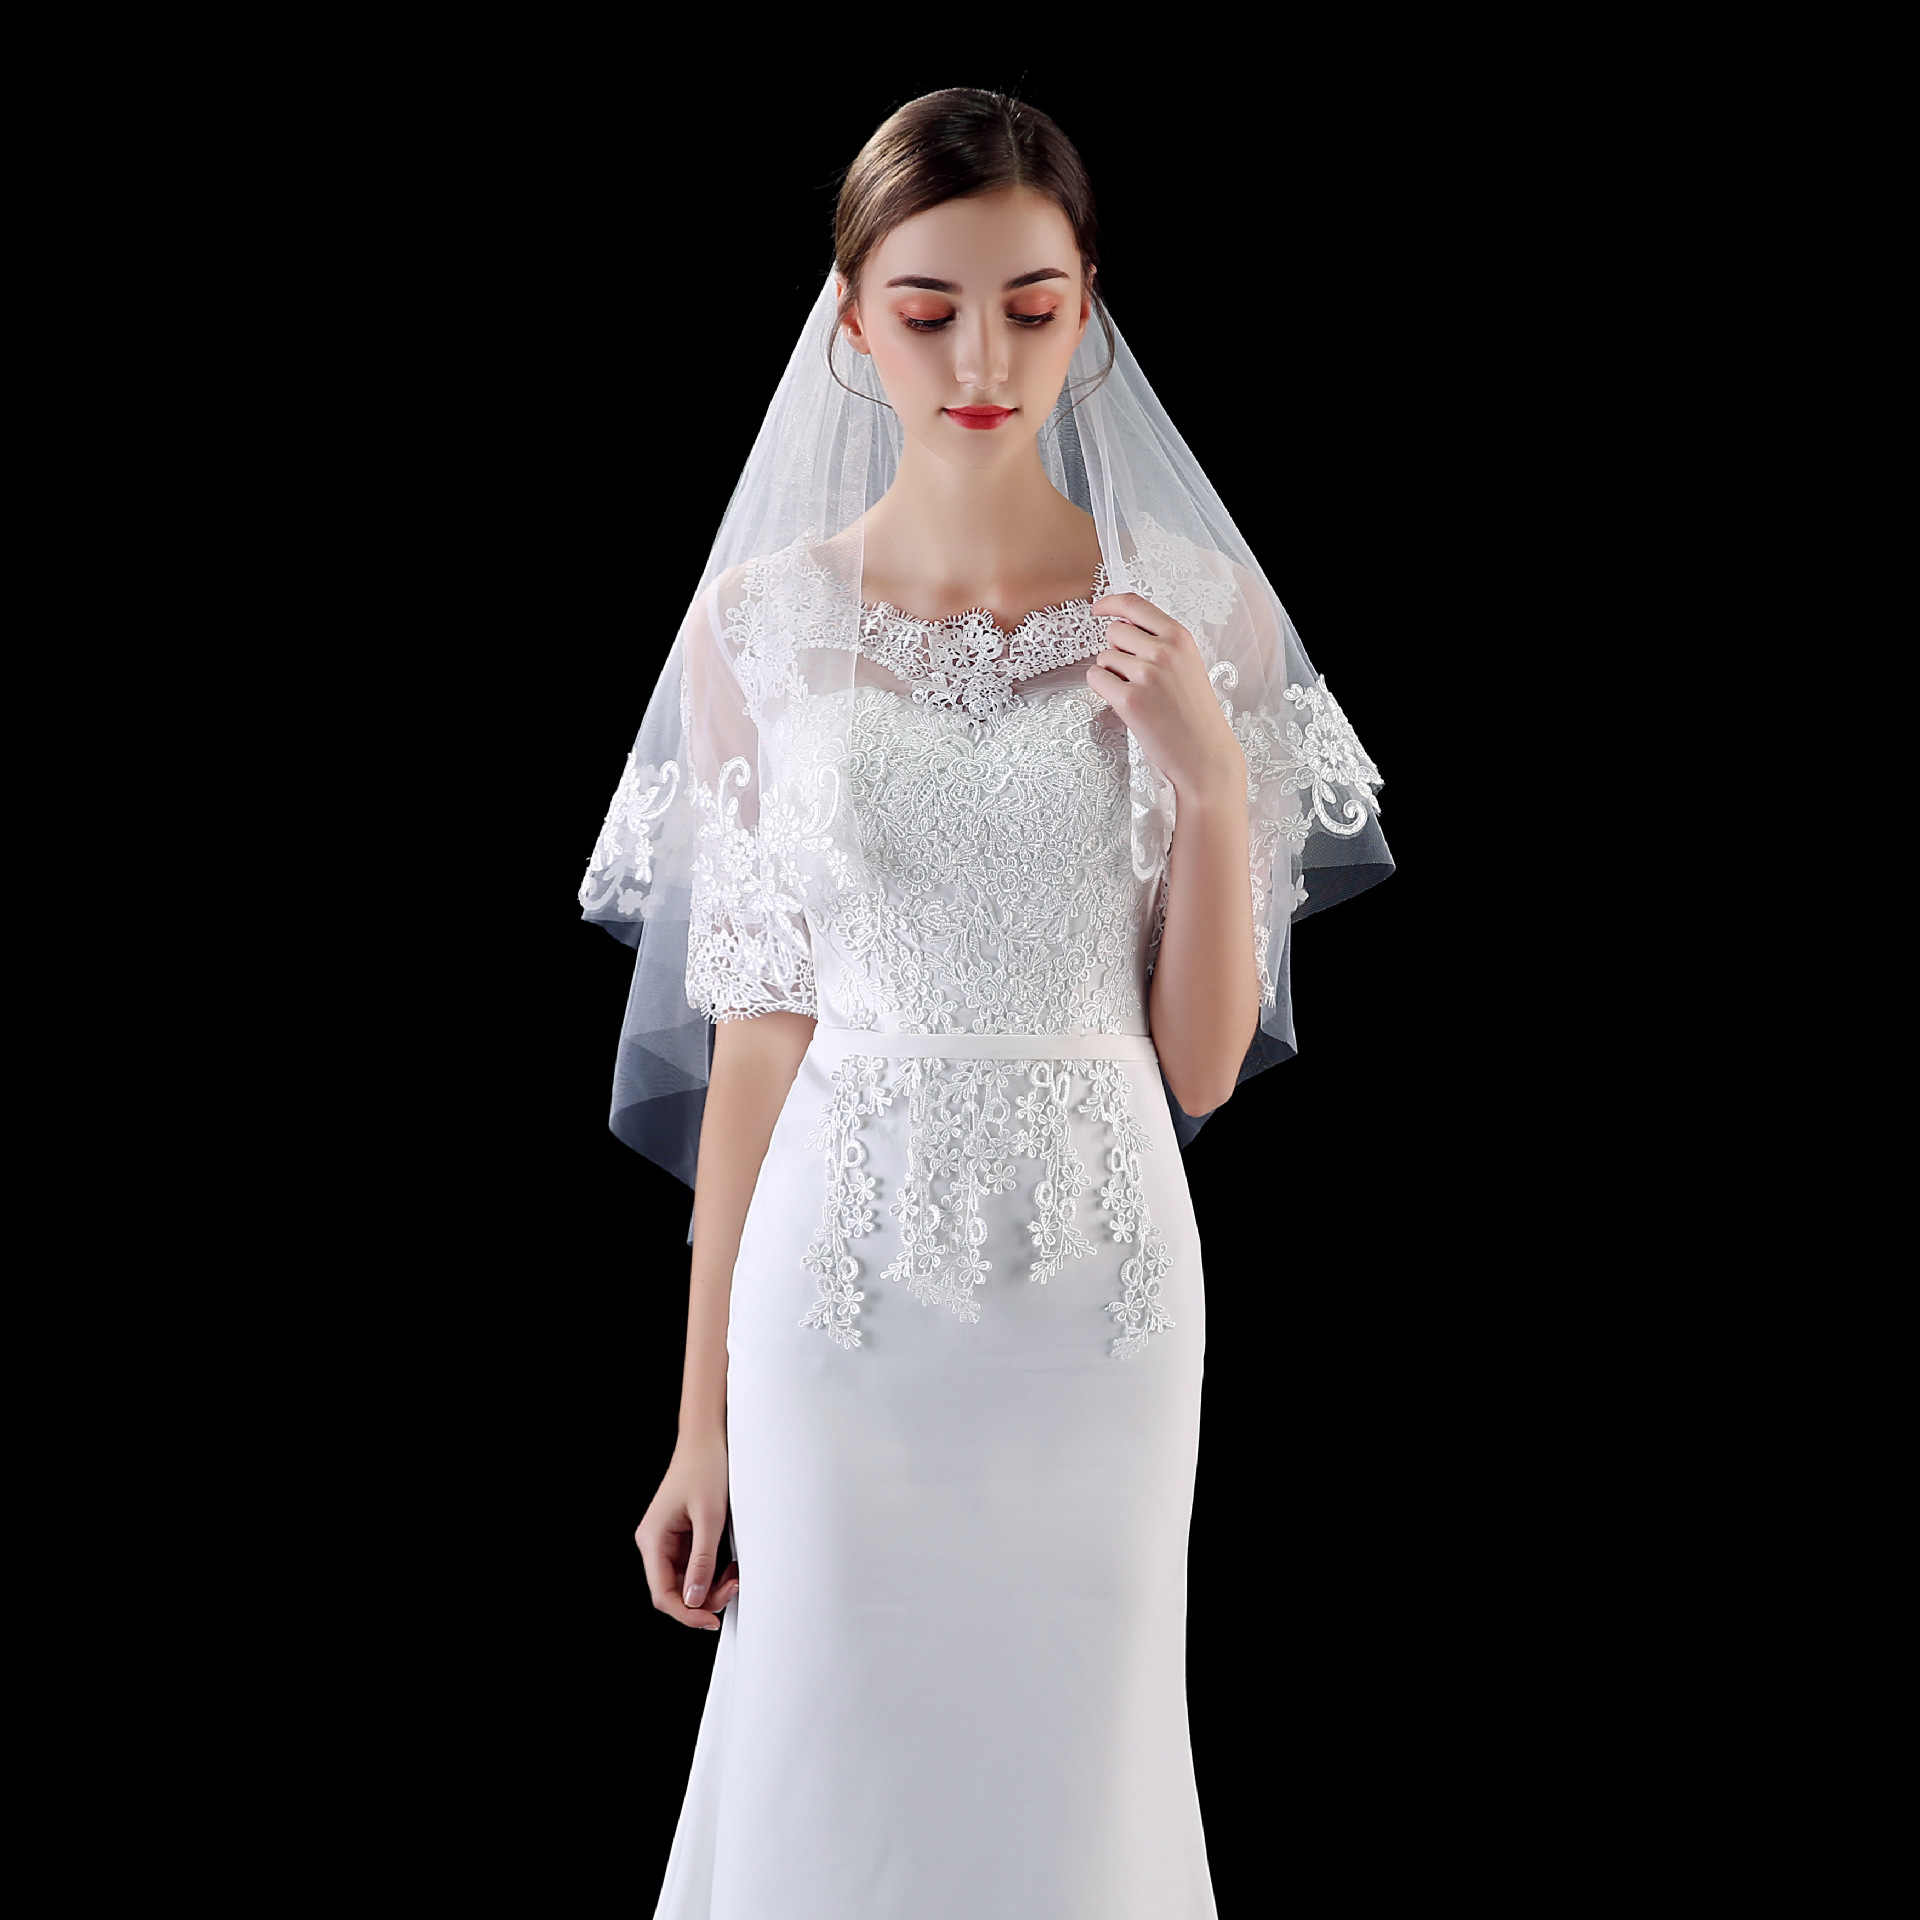 New Style Bridal Headdress Fashion Double Hair Comb Wedding Accessories  Easy to Wear Exquisite Lace Applique Wedding Headdress|Women's Hair  Accessories| - AliExpress